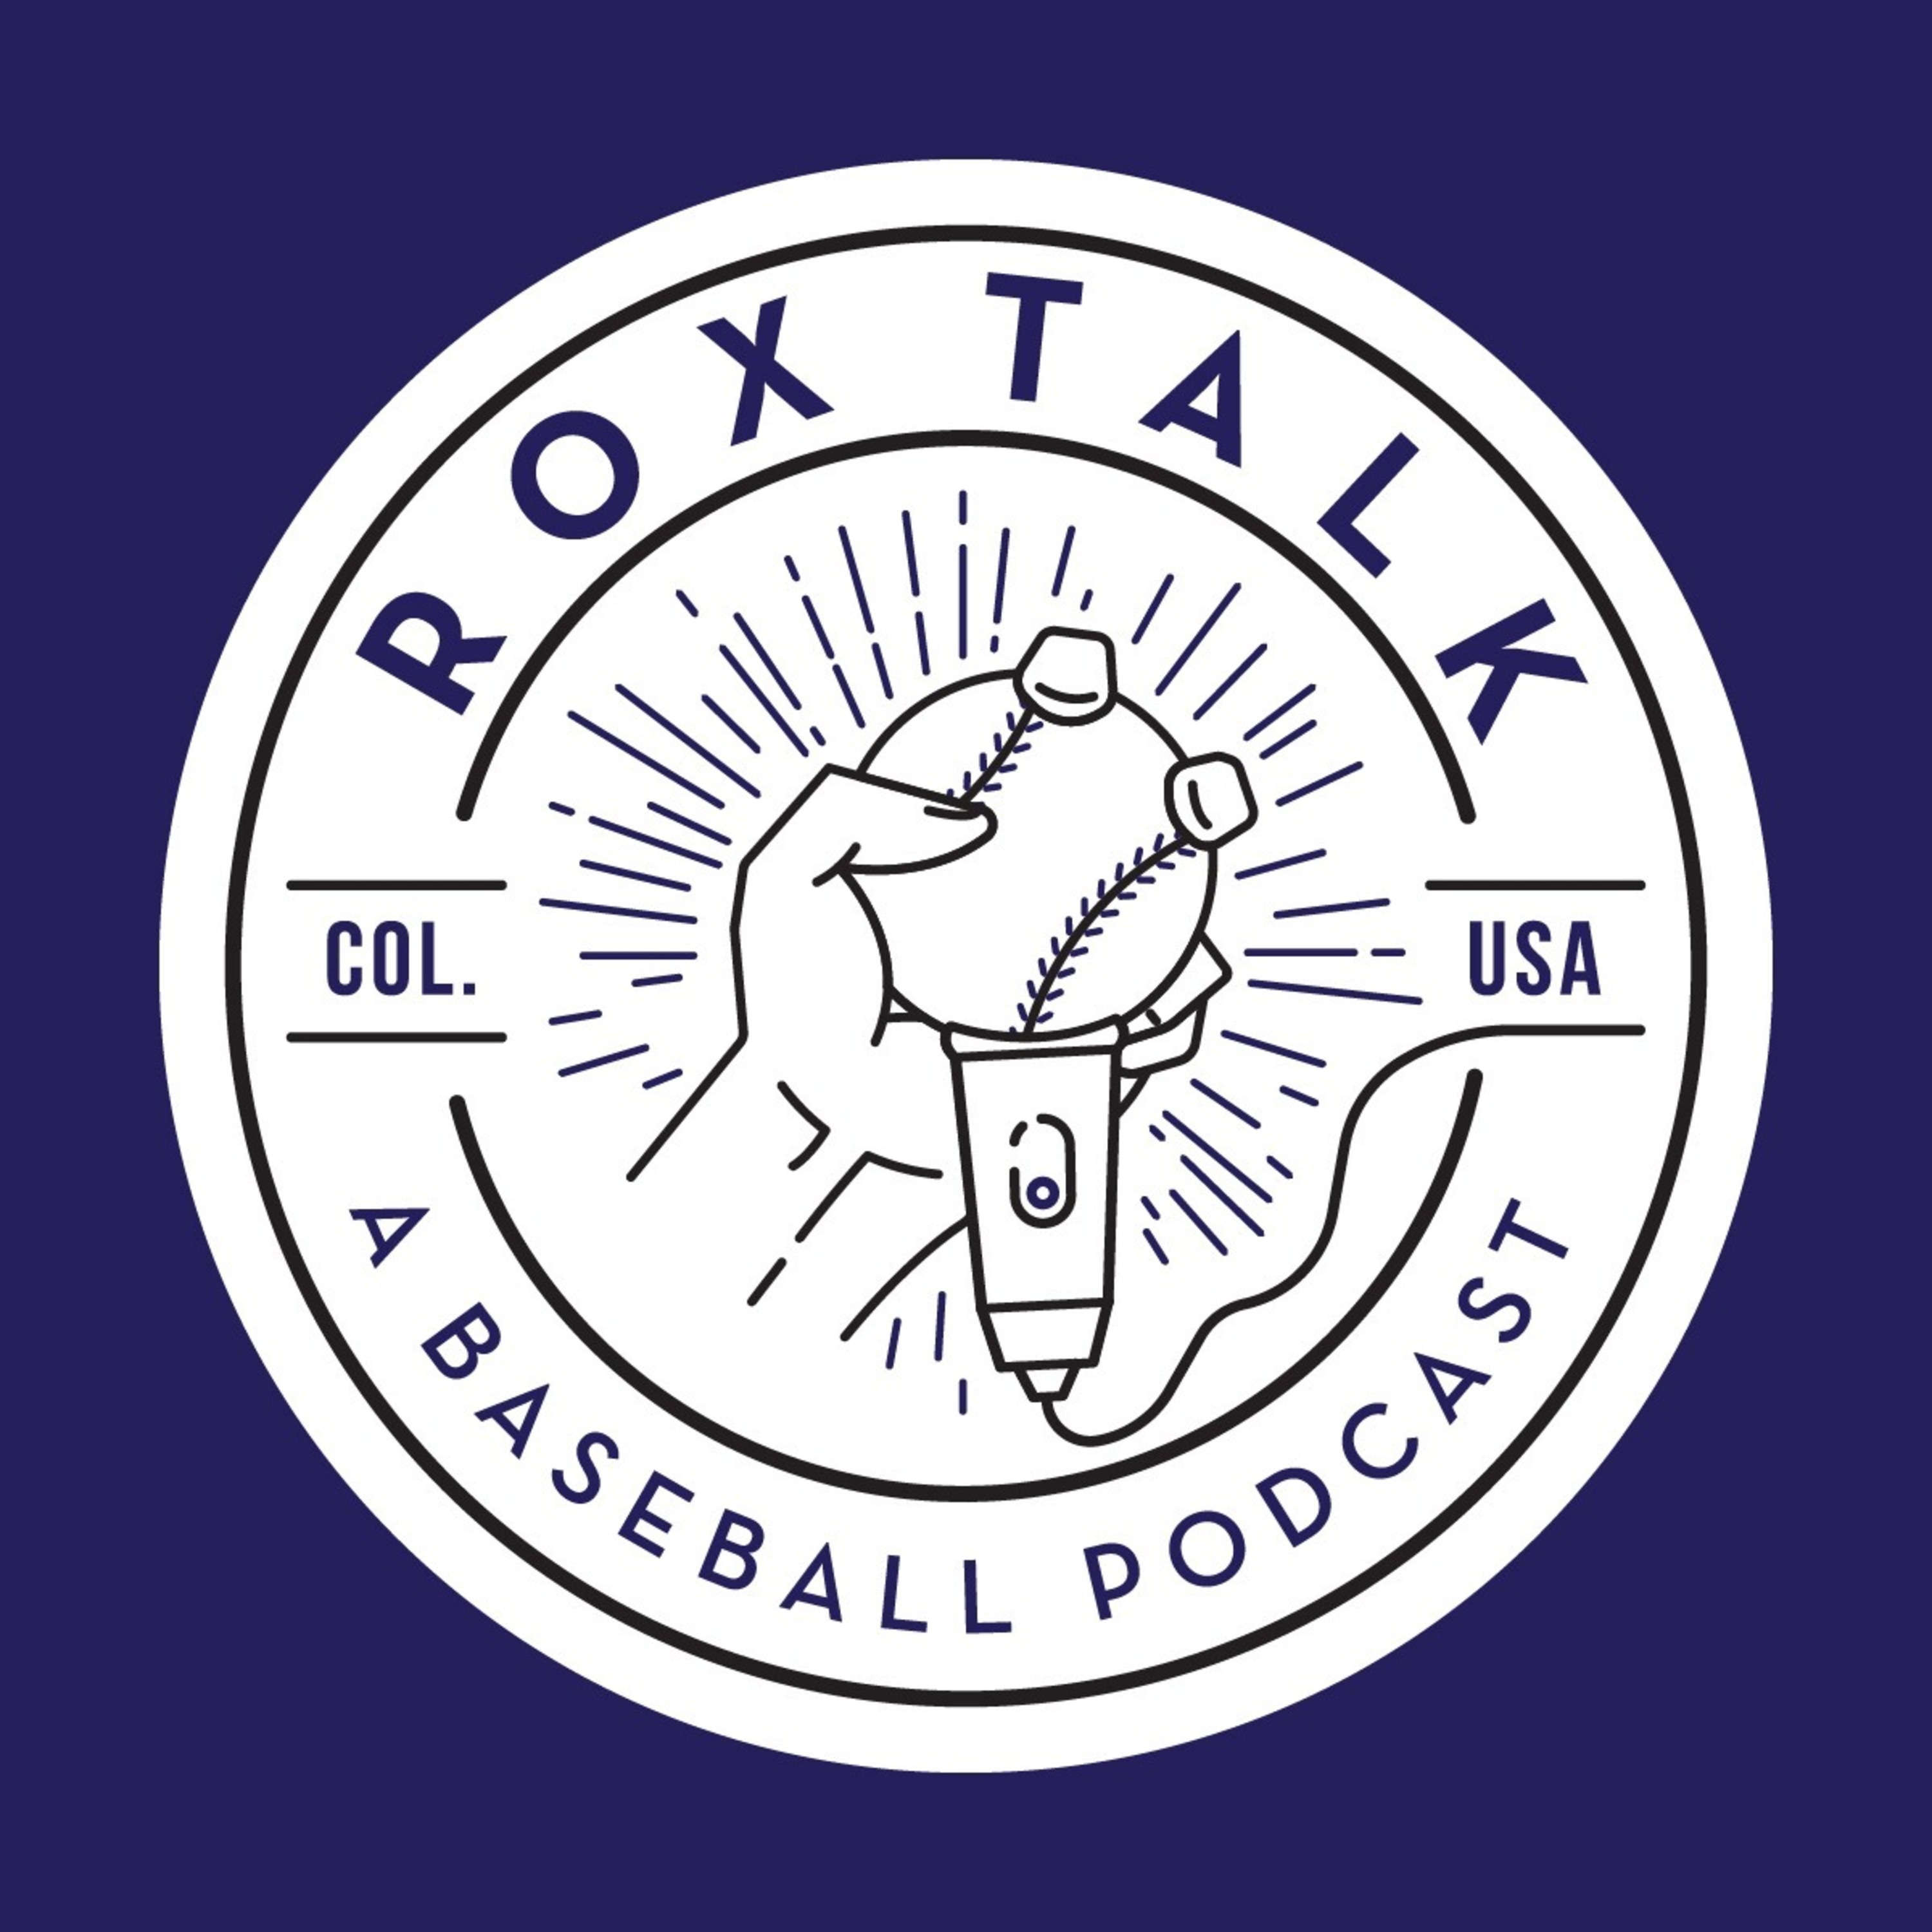 Episode 10: Another One Bites the Rox